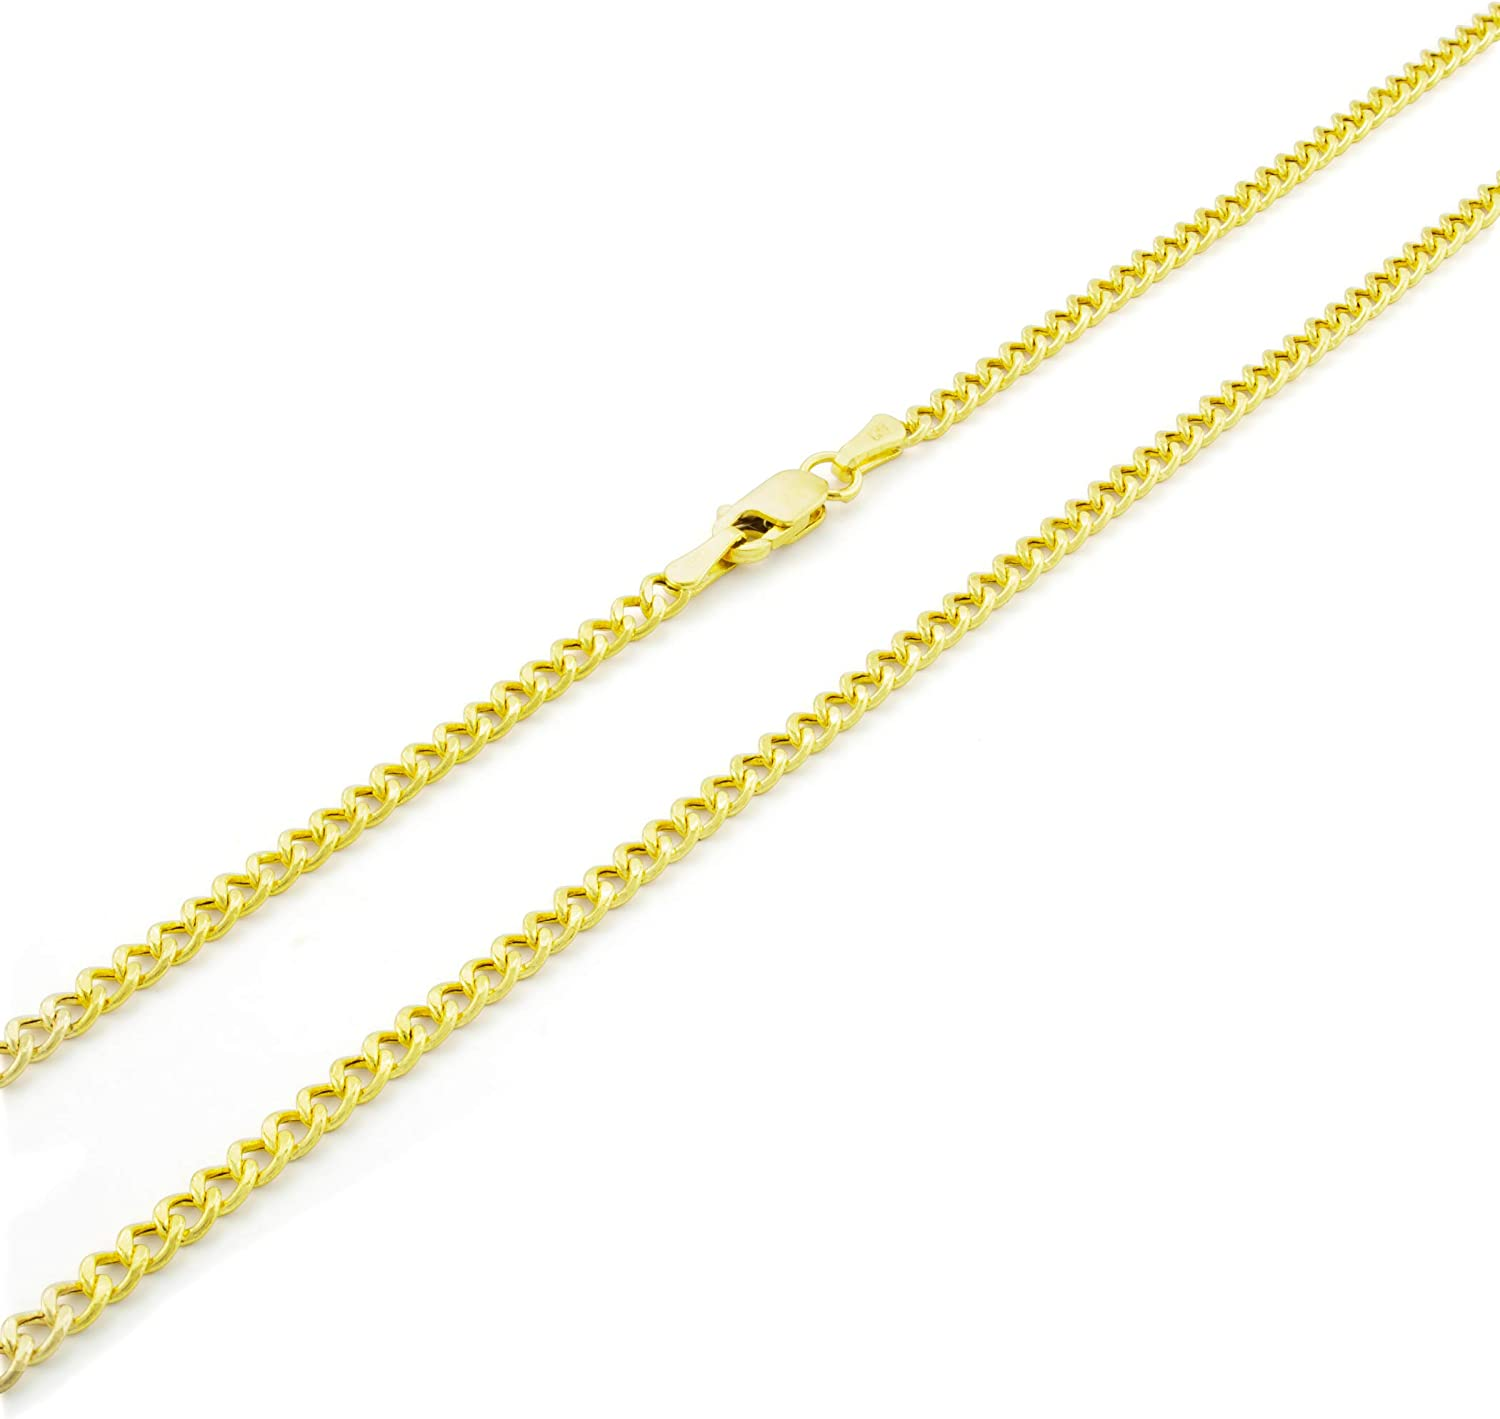 Nuragold 14k Yellow Gold 2.5mm Cuban Curb Link Chain Pendant Necklace, Mens Womens Lobster Lock 16